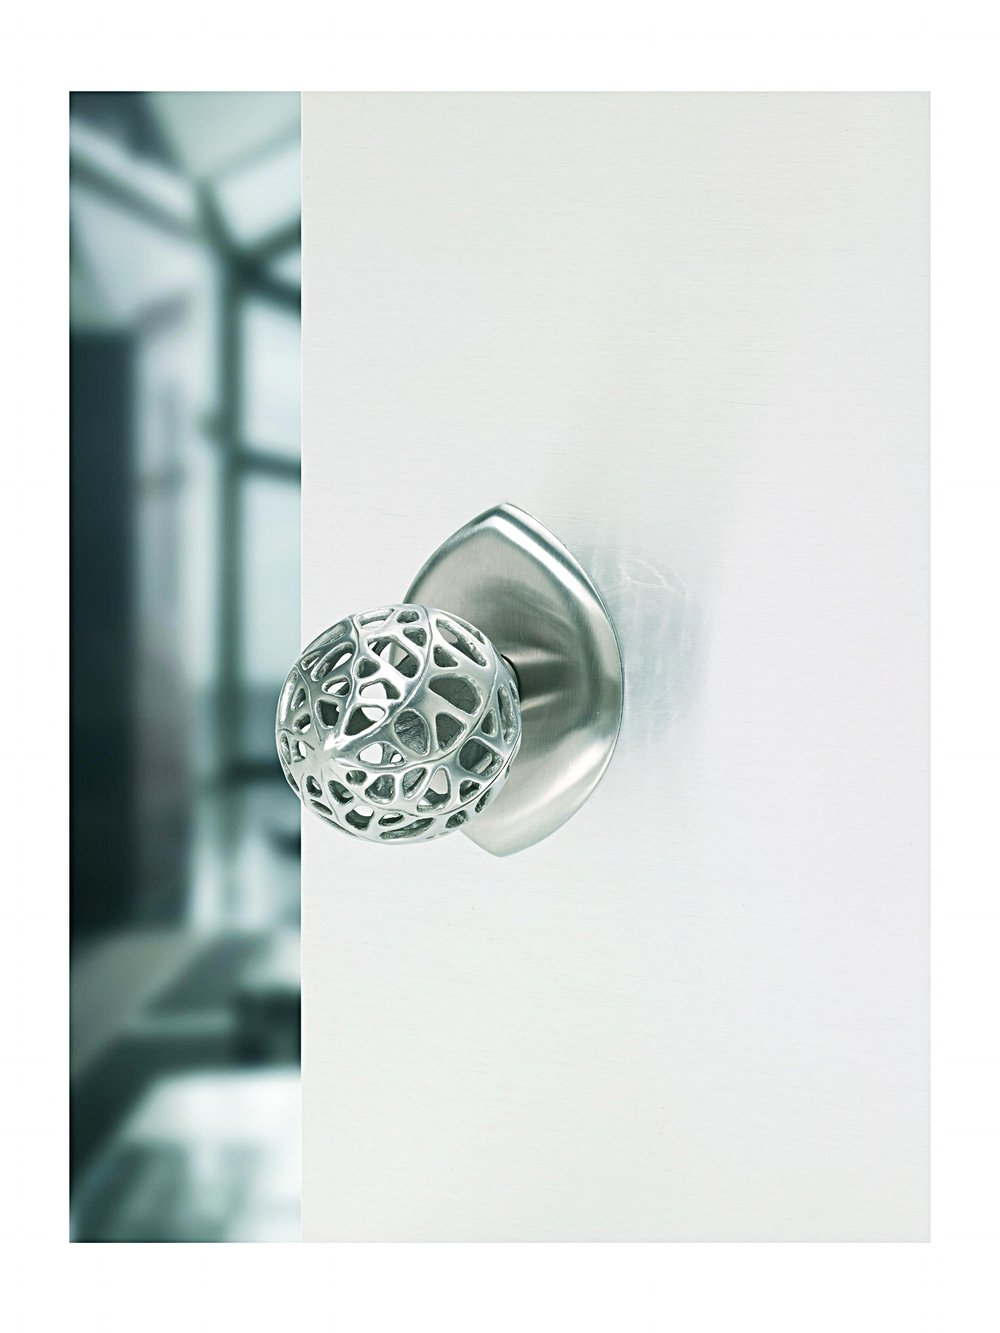 Modern Door Knob part of the Morphic Collection